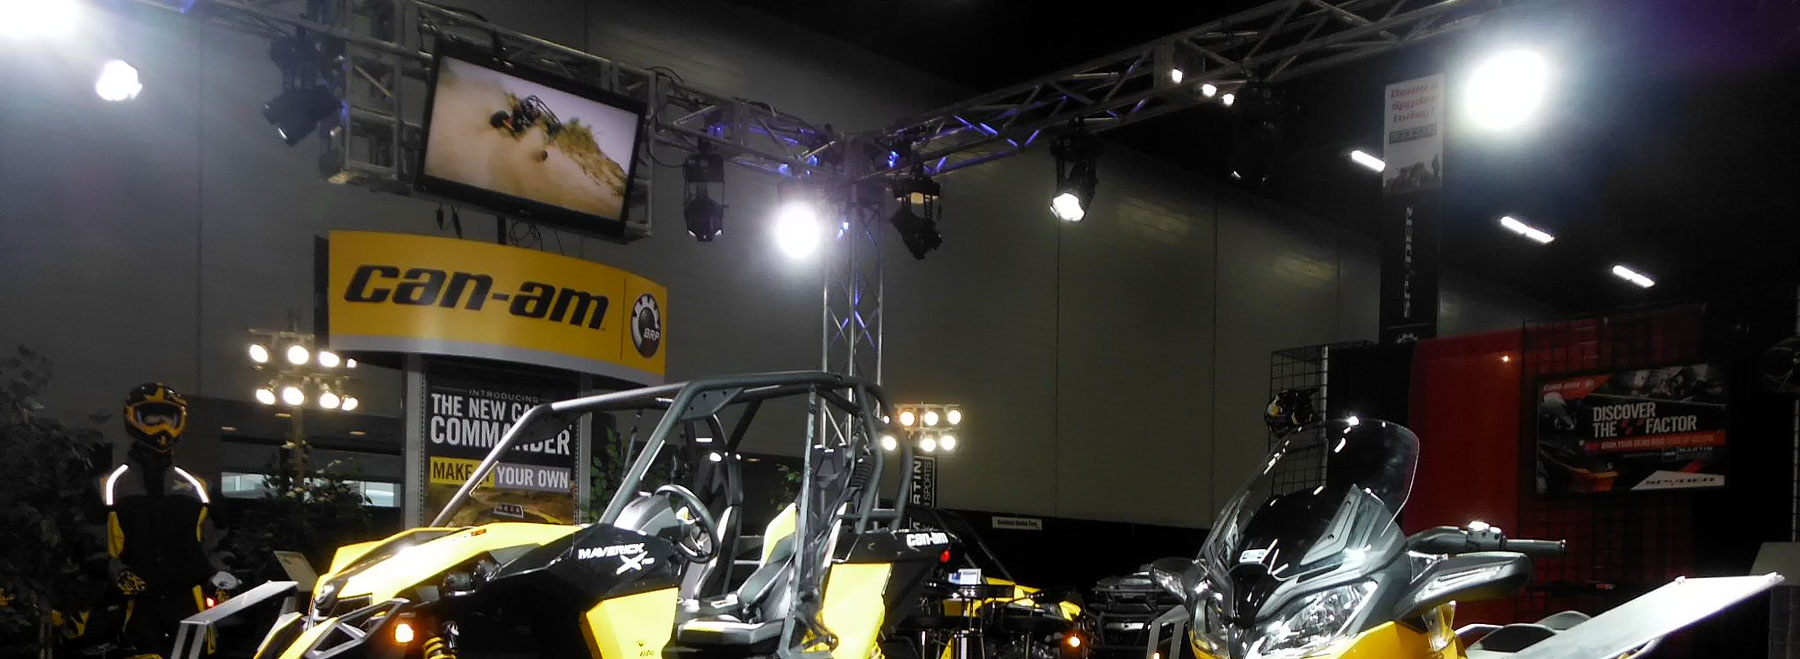 Trade show exhibits come to life with audio, video, lighting and staging from Allstar Show Industries.